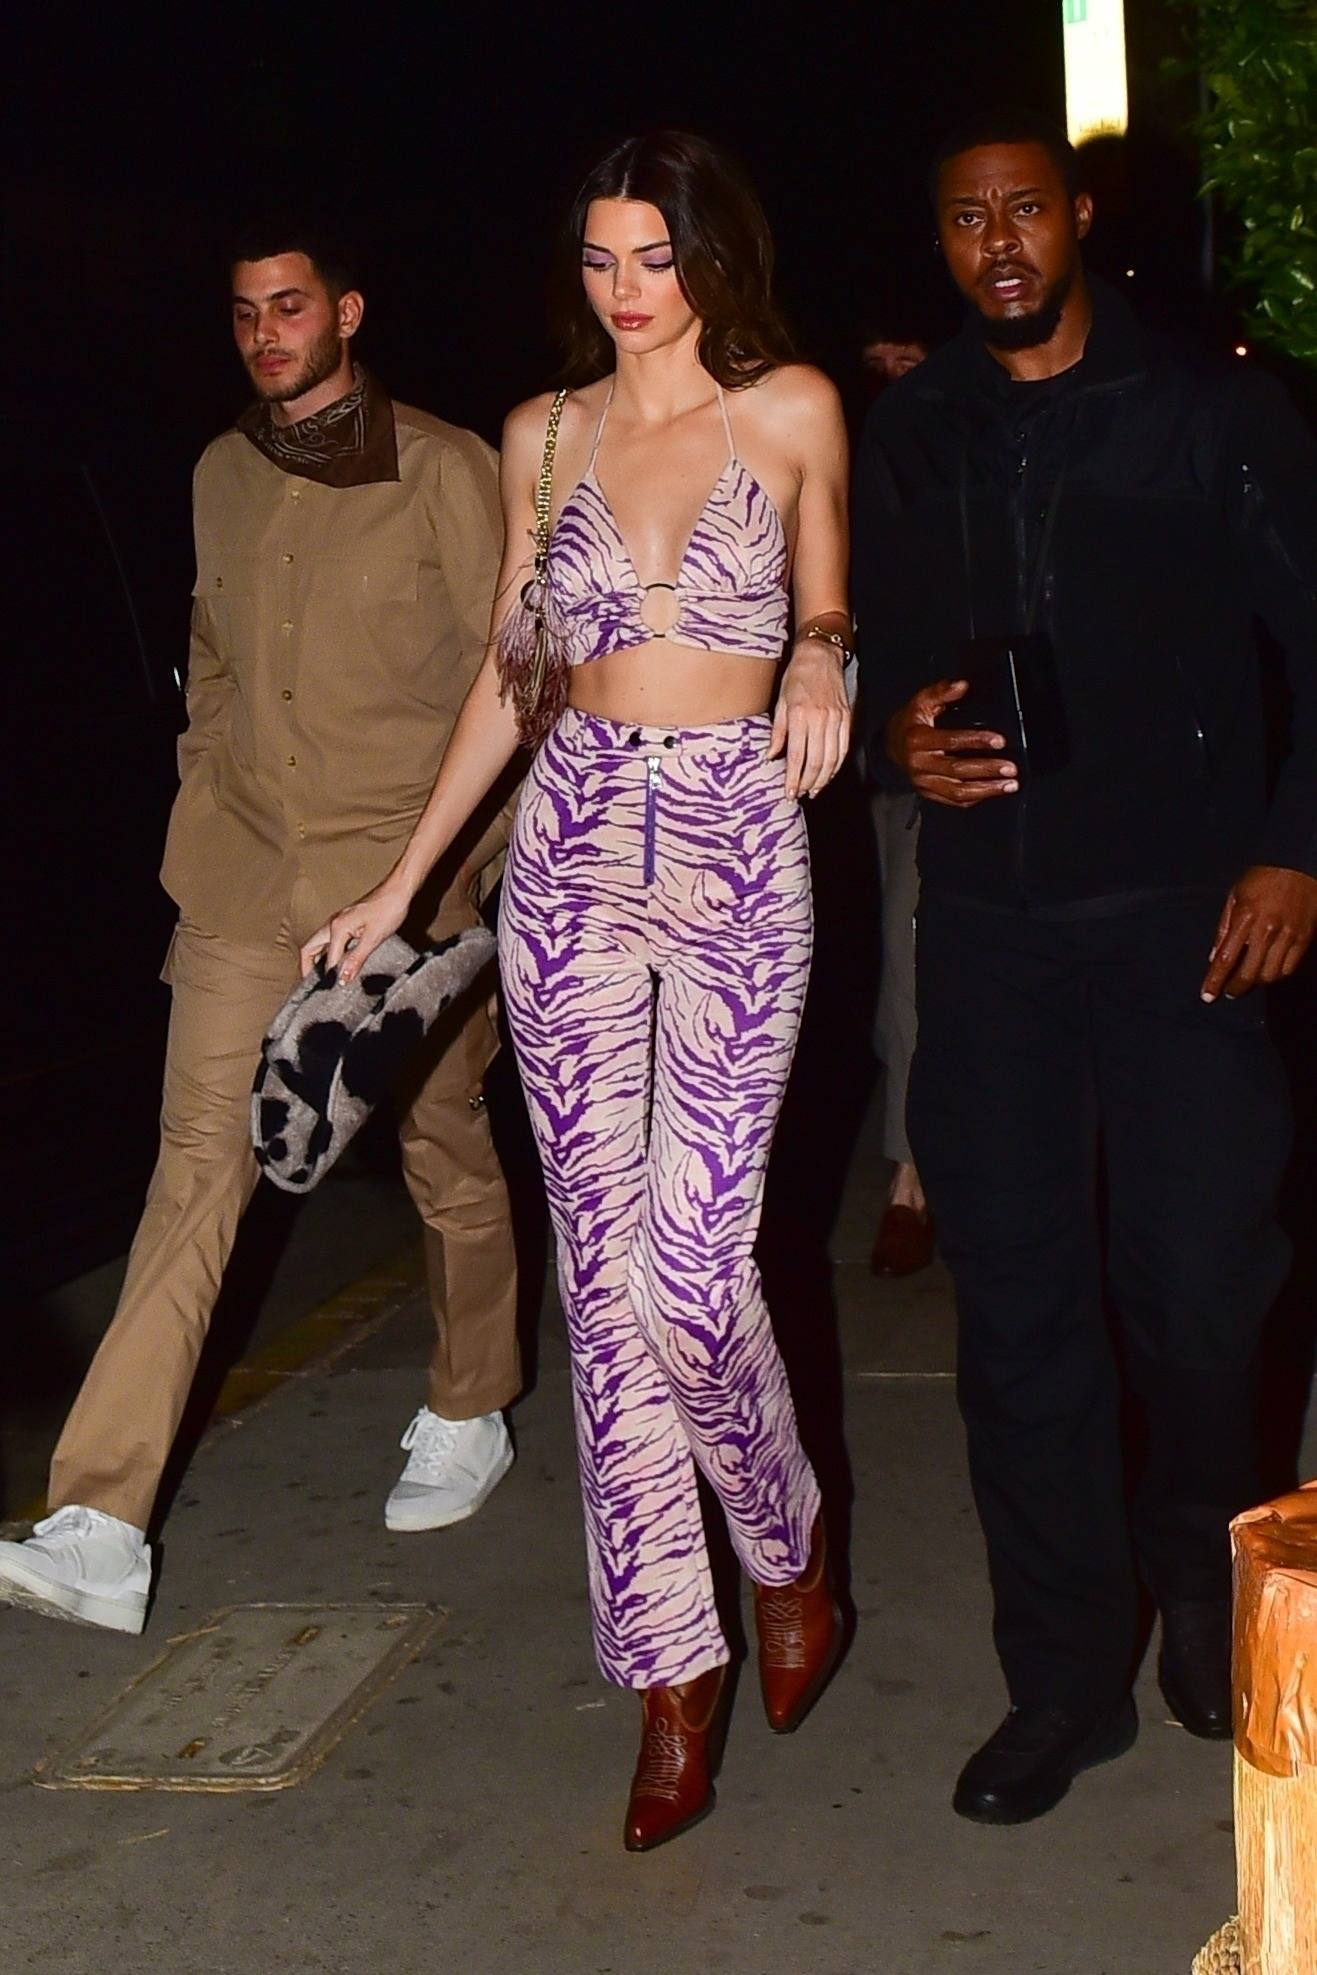 Kendall Jenner Sexy In Tiny Top